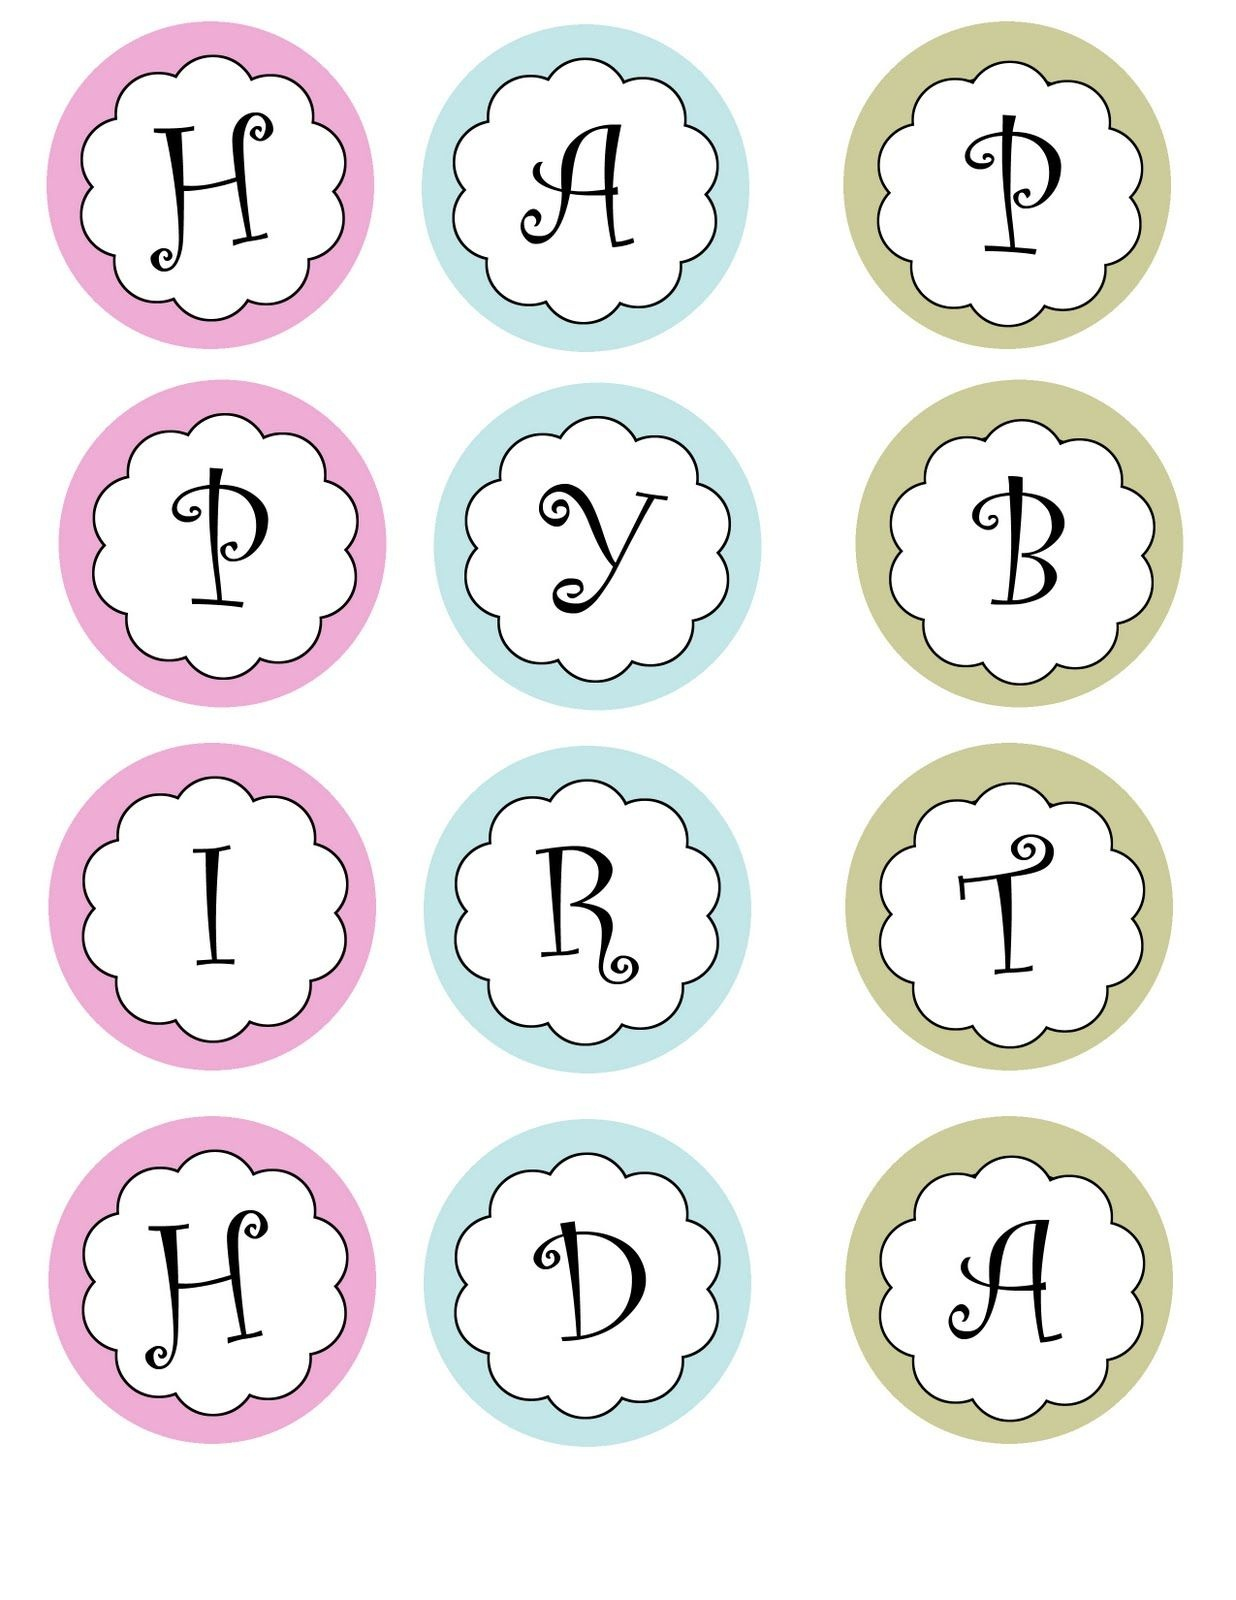 Printable Banners Templates Free | Print Your Own Birthday Banner - Free Printable Happy Birthday Banner Templates